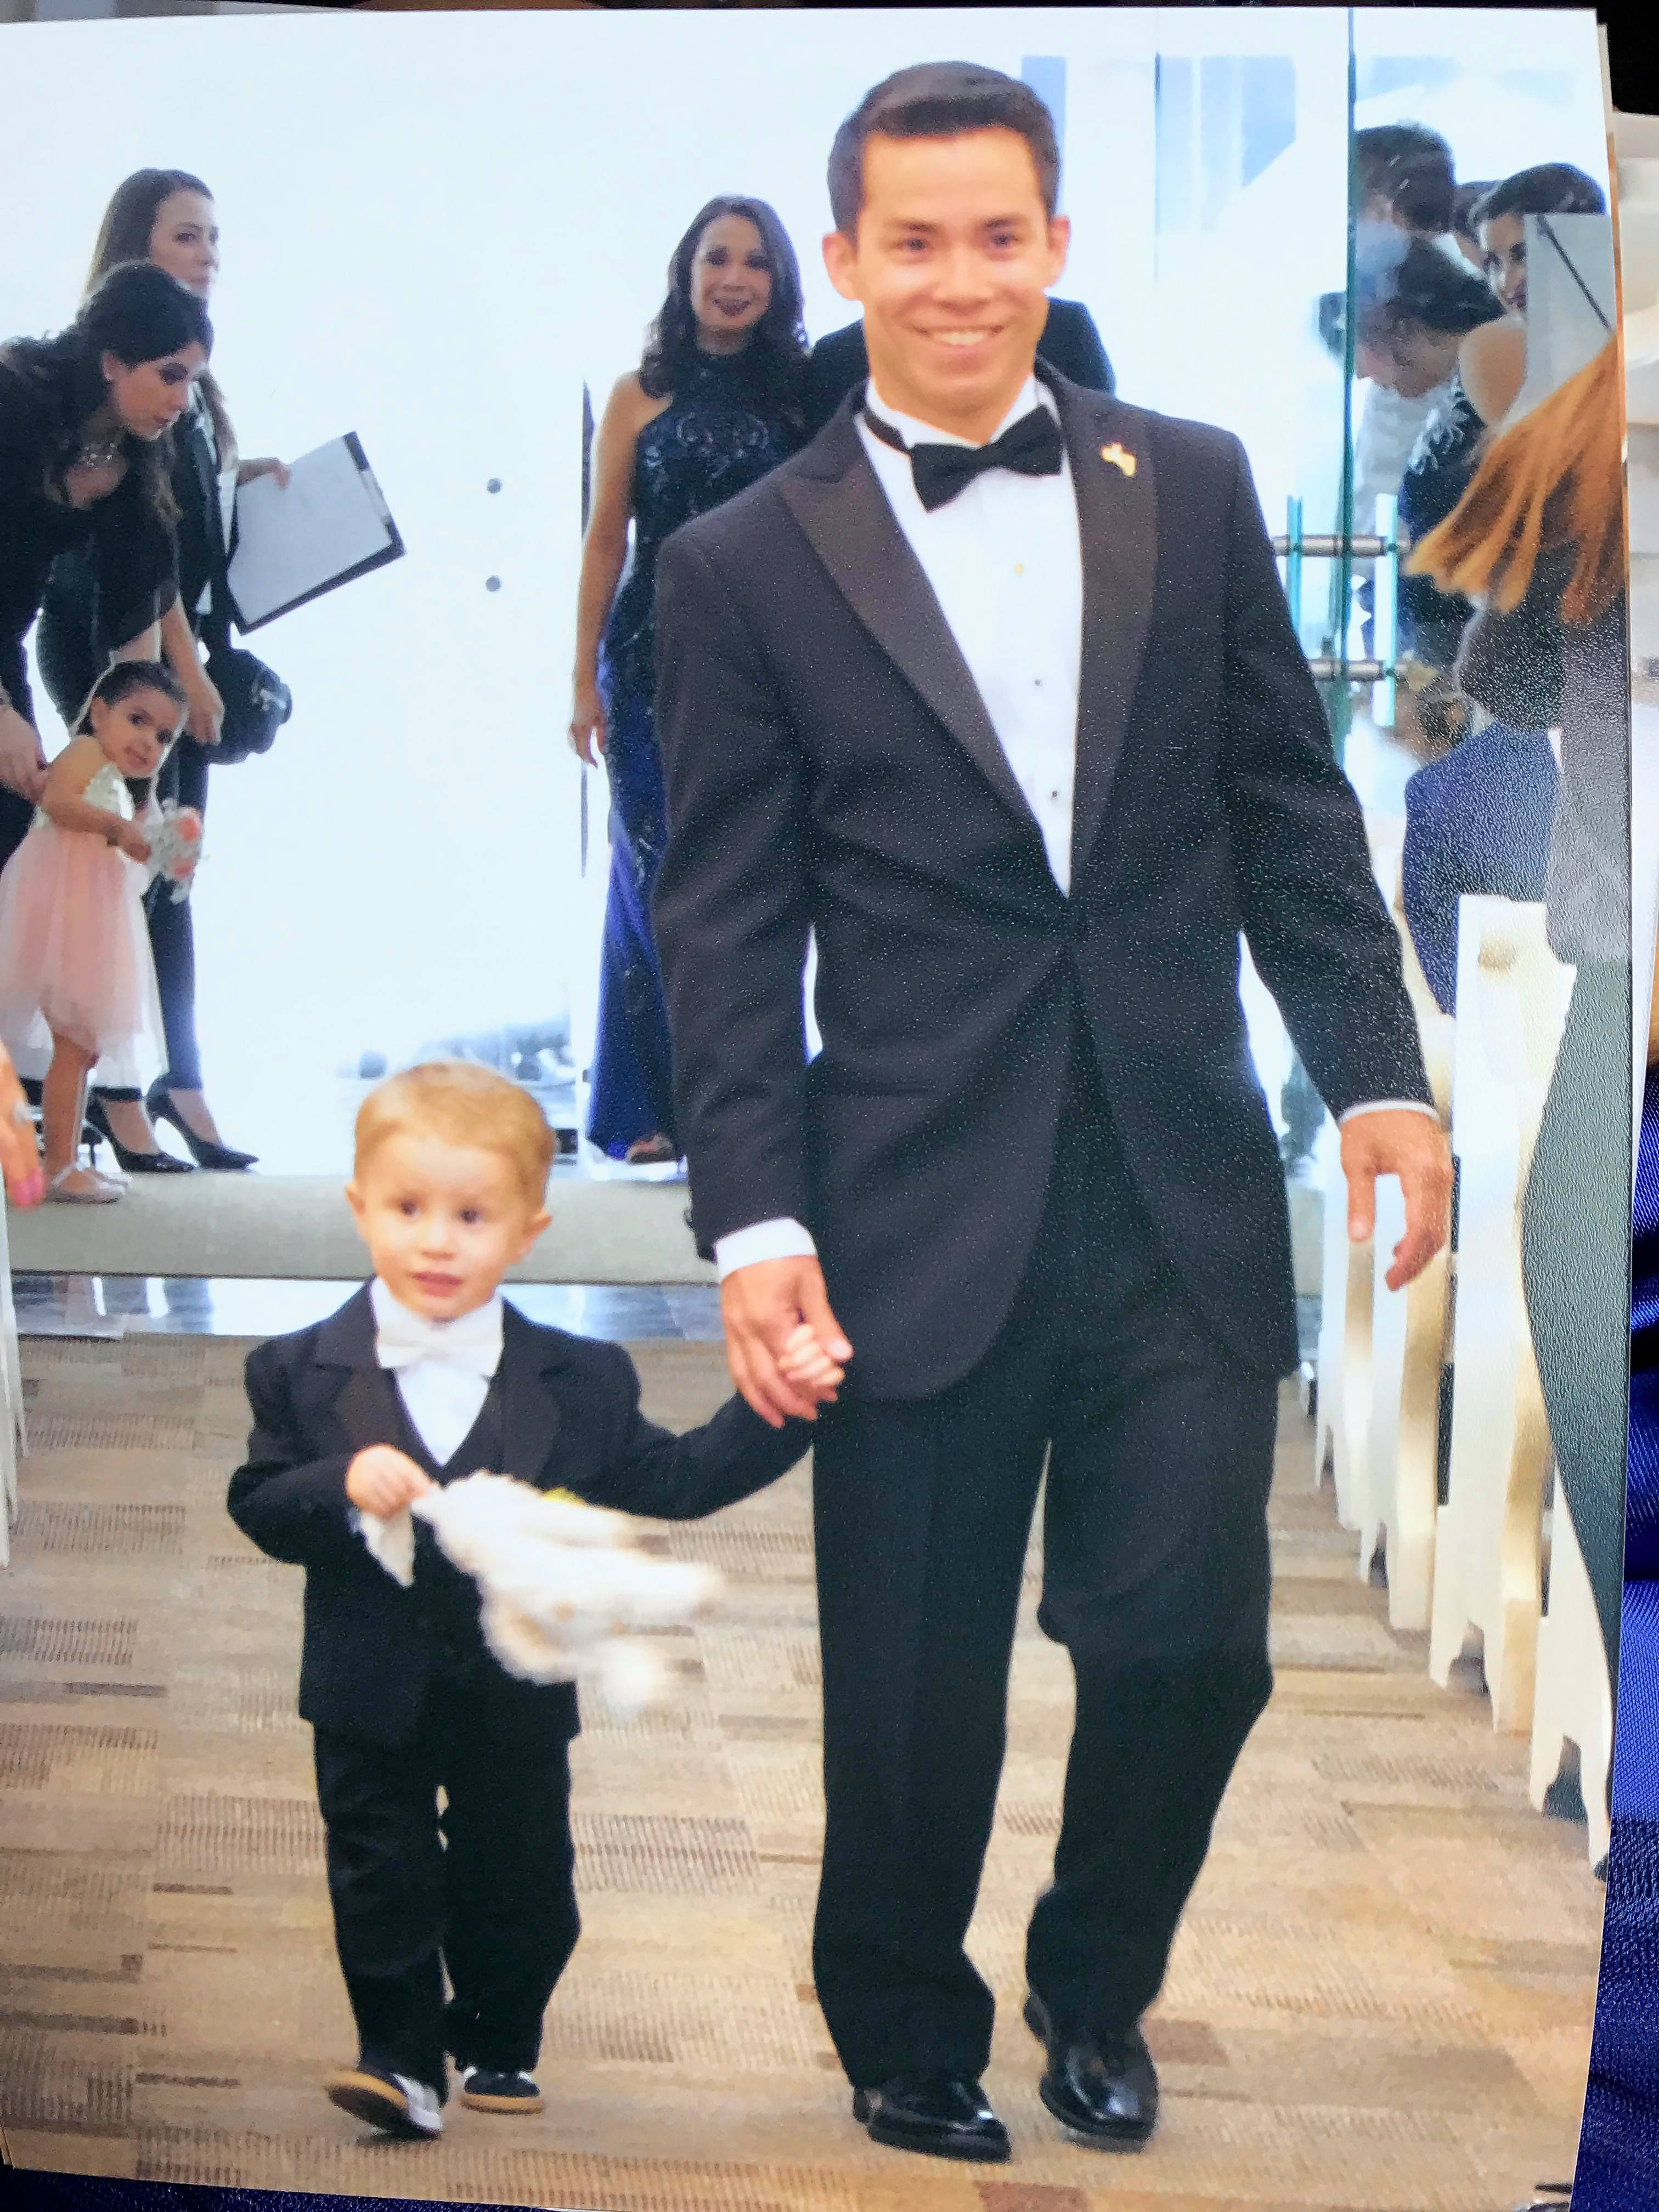 Dan Hohs walks down the aisle with a young family member during his brother's wedding in May.